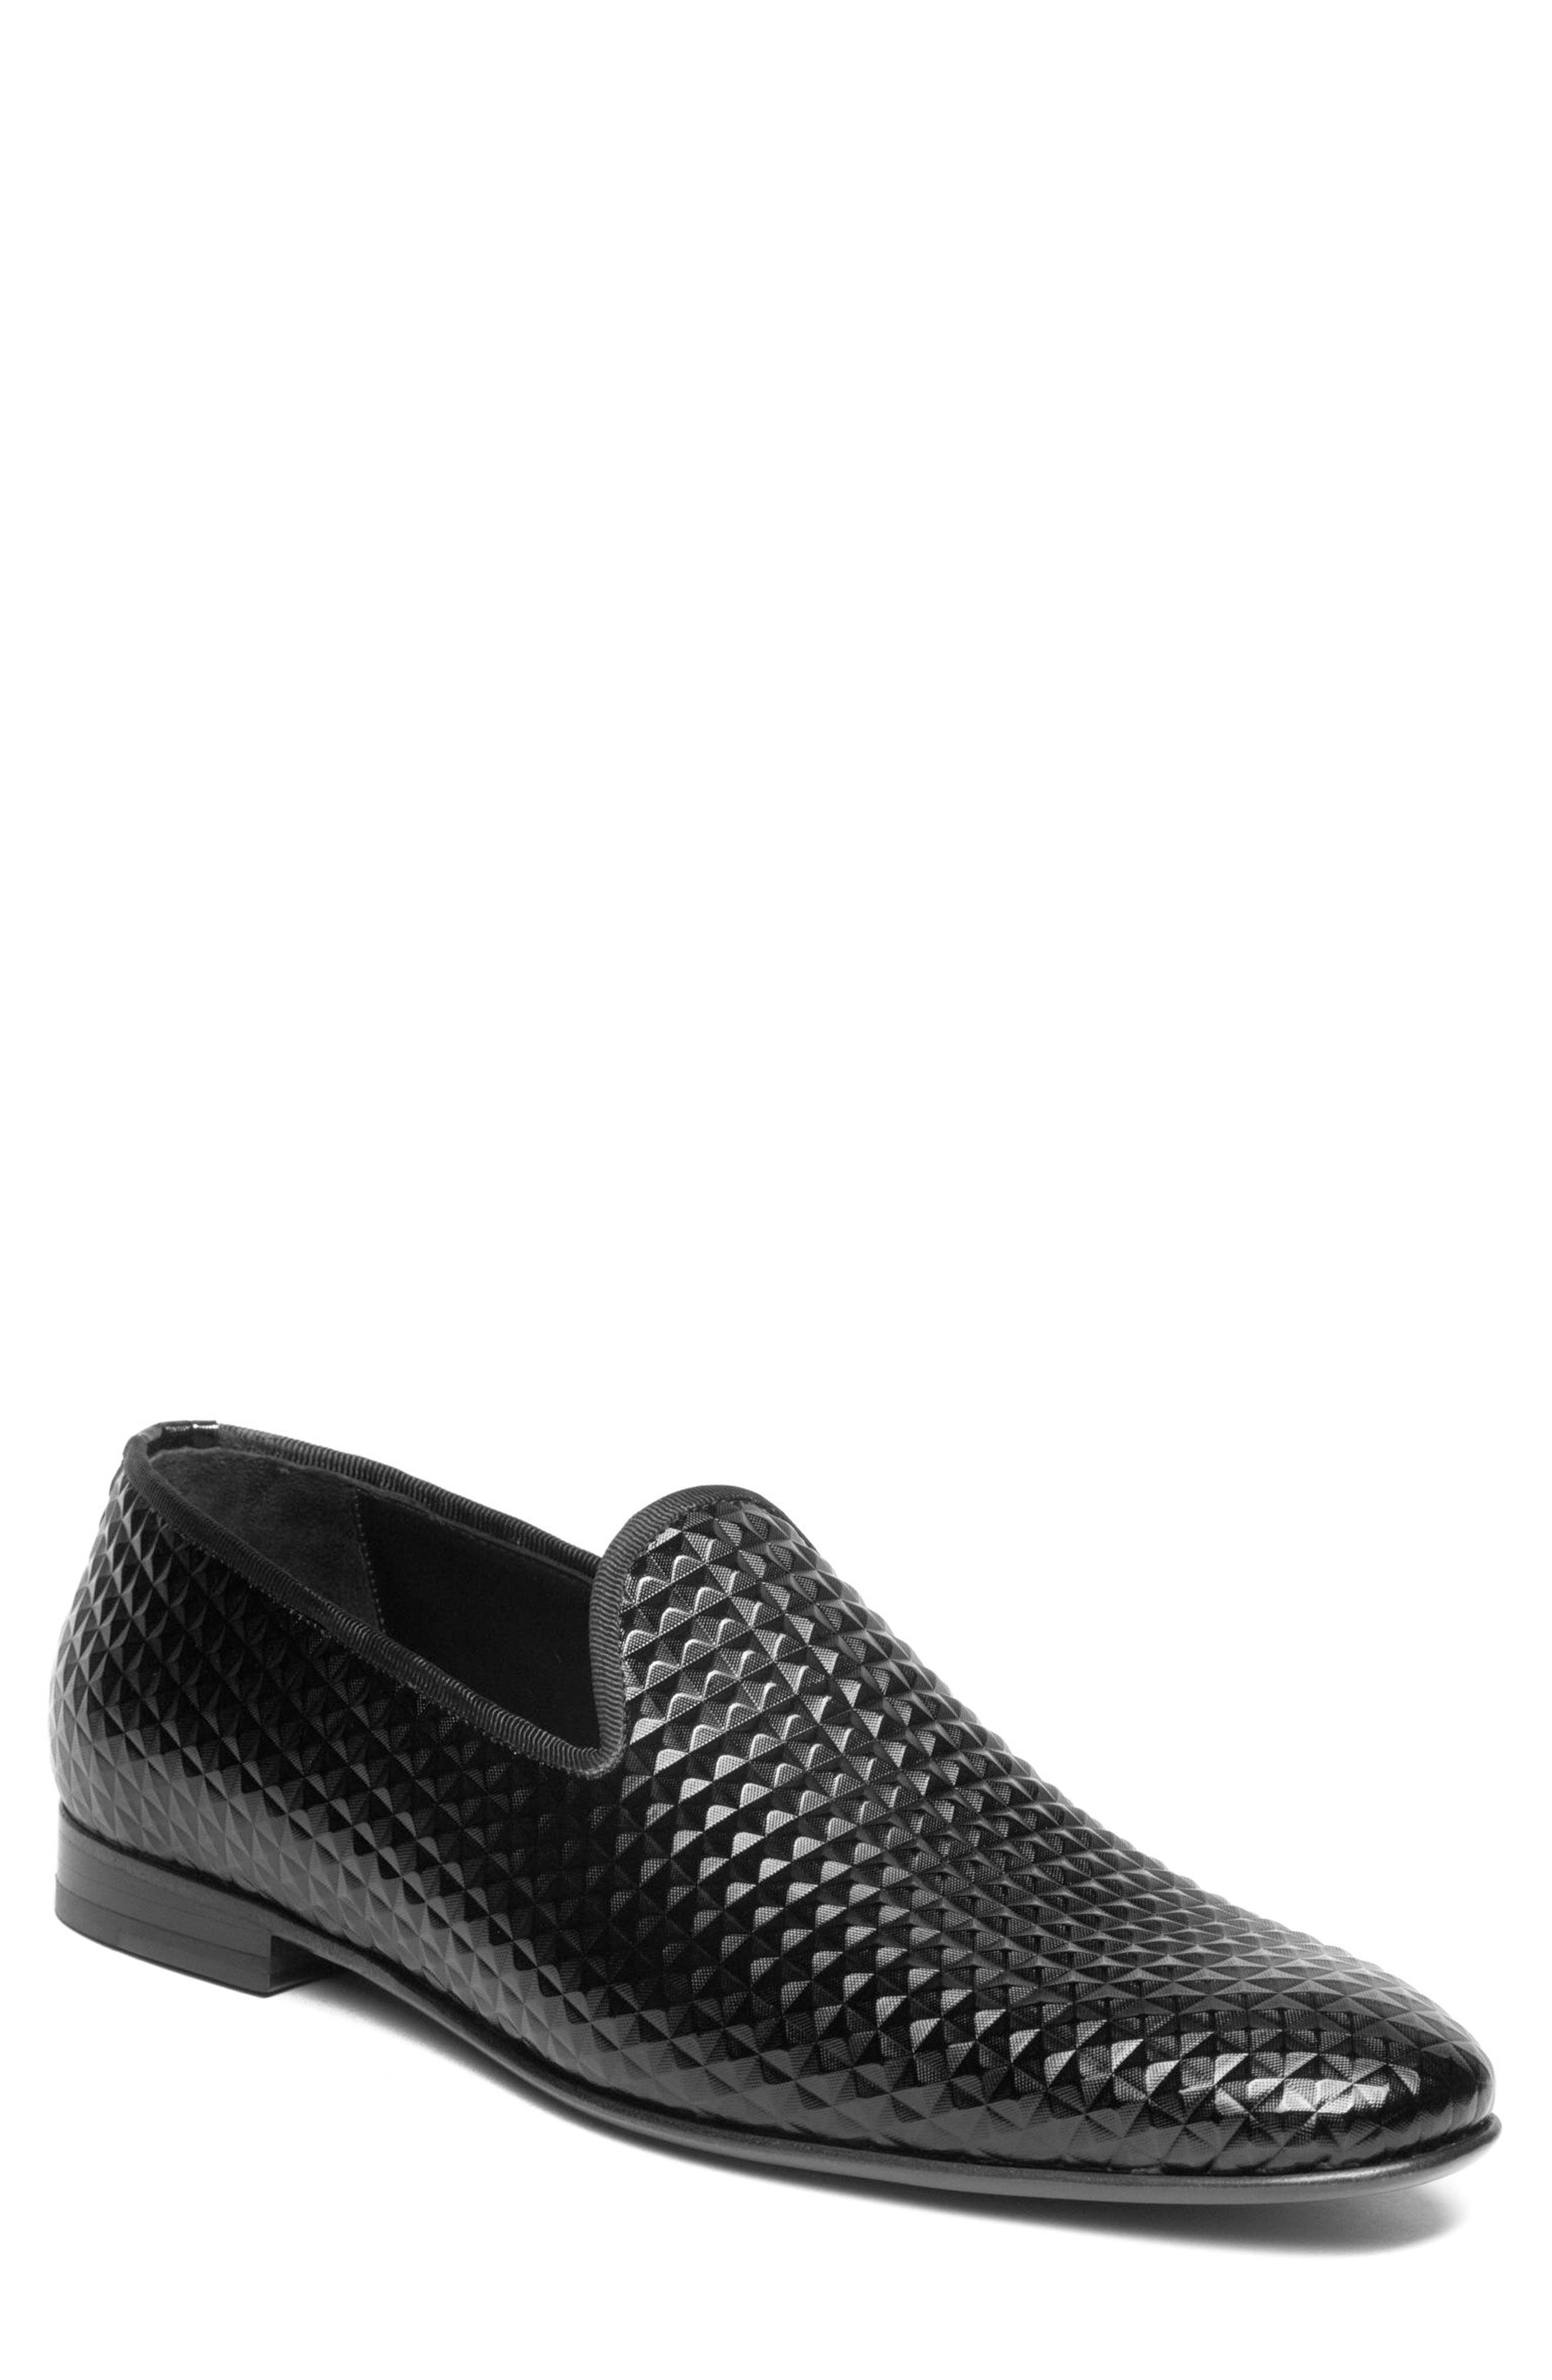 Hugh Pyramid Embossed Venetian Loafer,                         Main,                         color, Black Leather